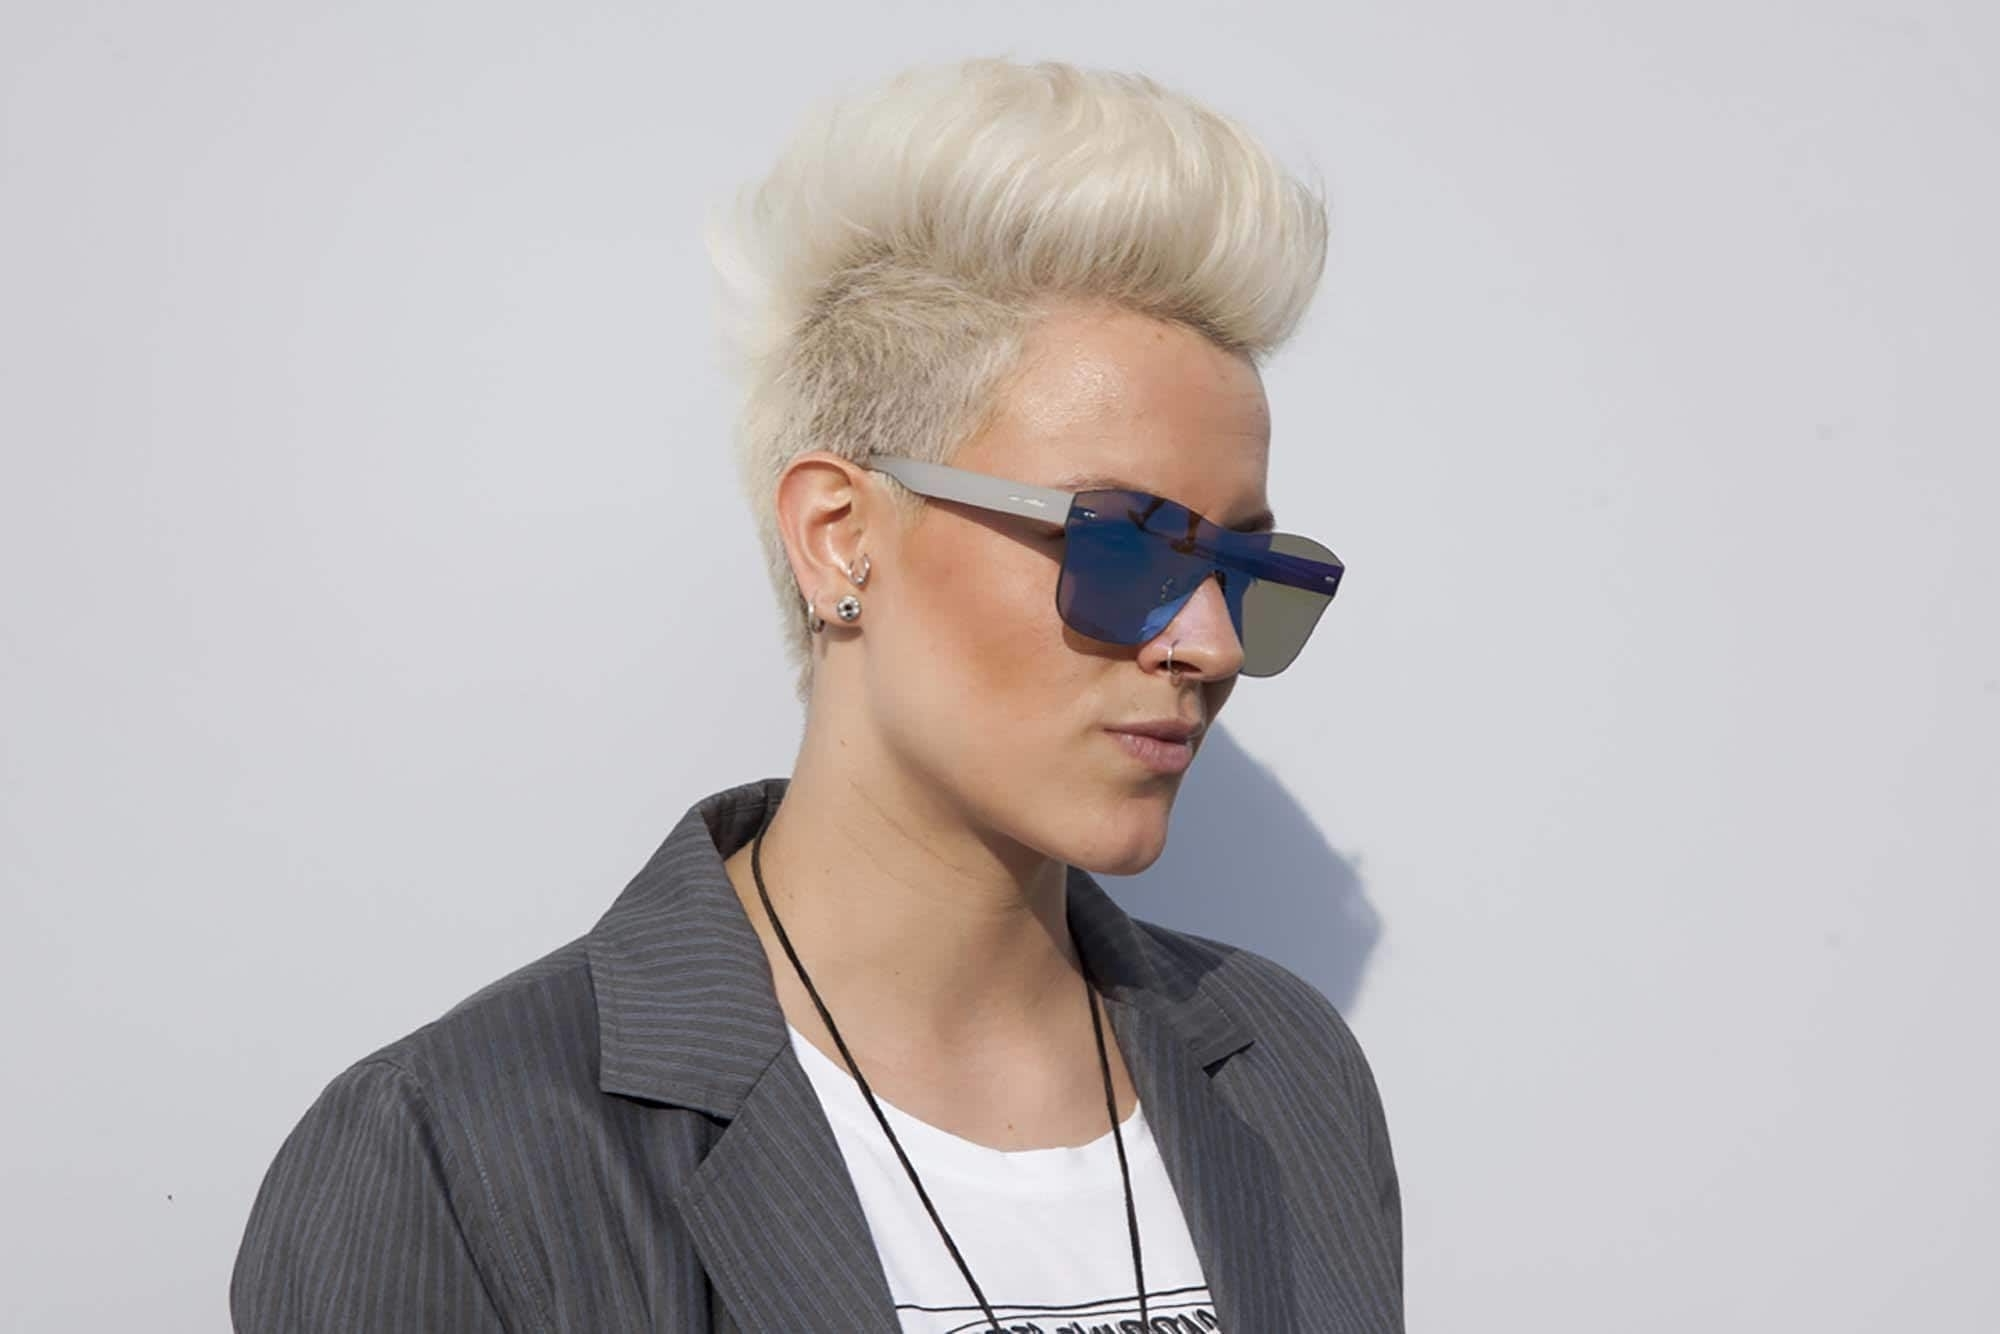 Short Spiky Haircuts For Women: 5 Edgy Hair Trends For Short Hair With Regard To Most Up To Date Spiked Blonde Mohawk Hairstyles (View 17 of 20)